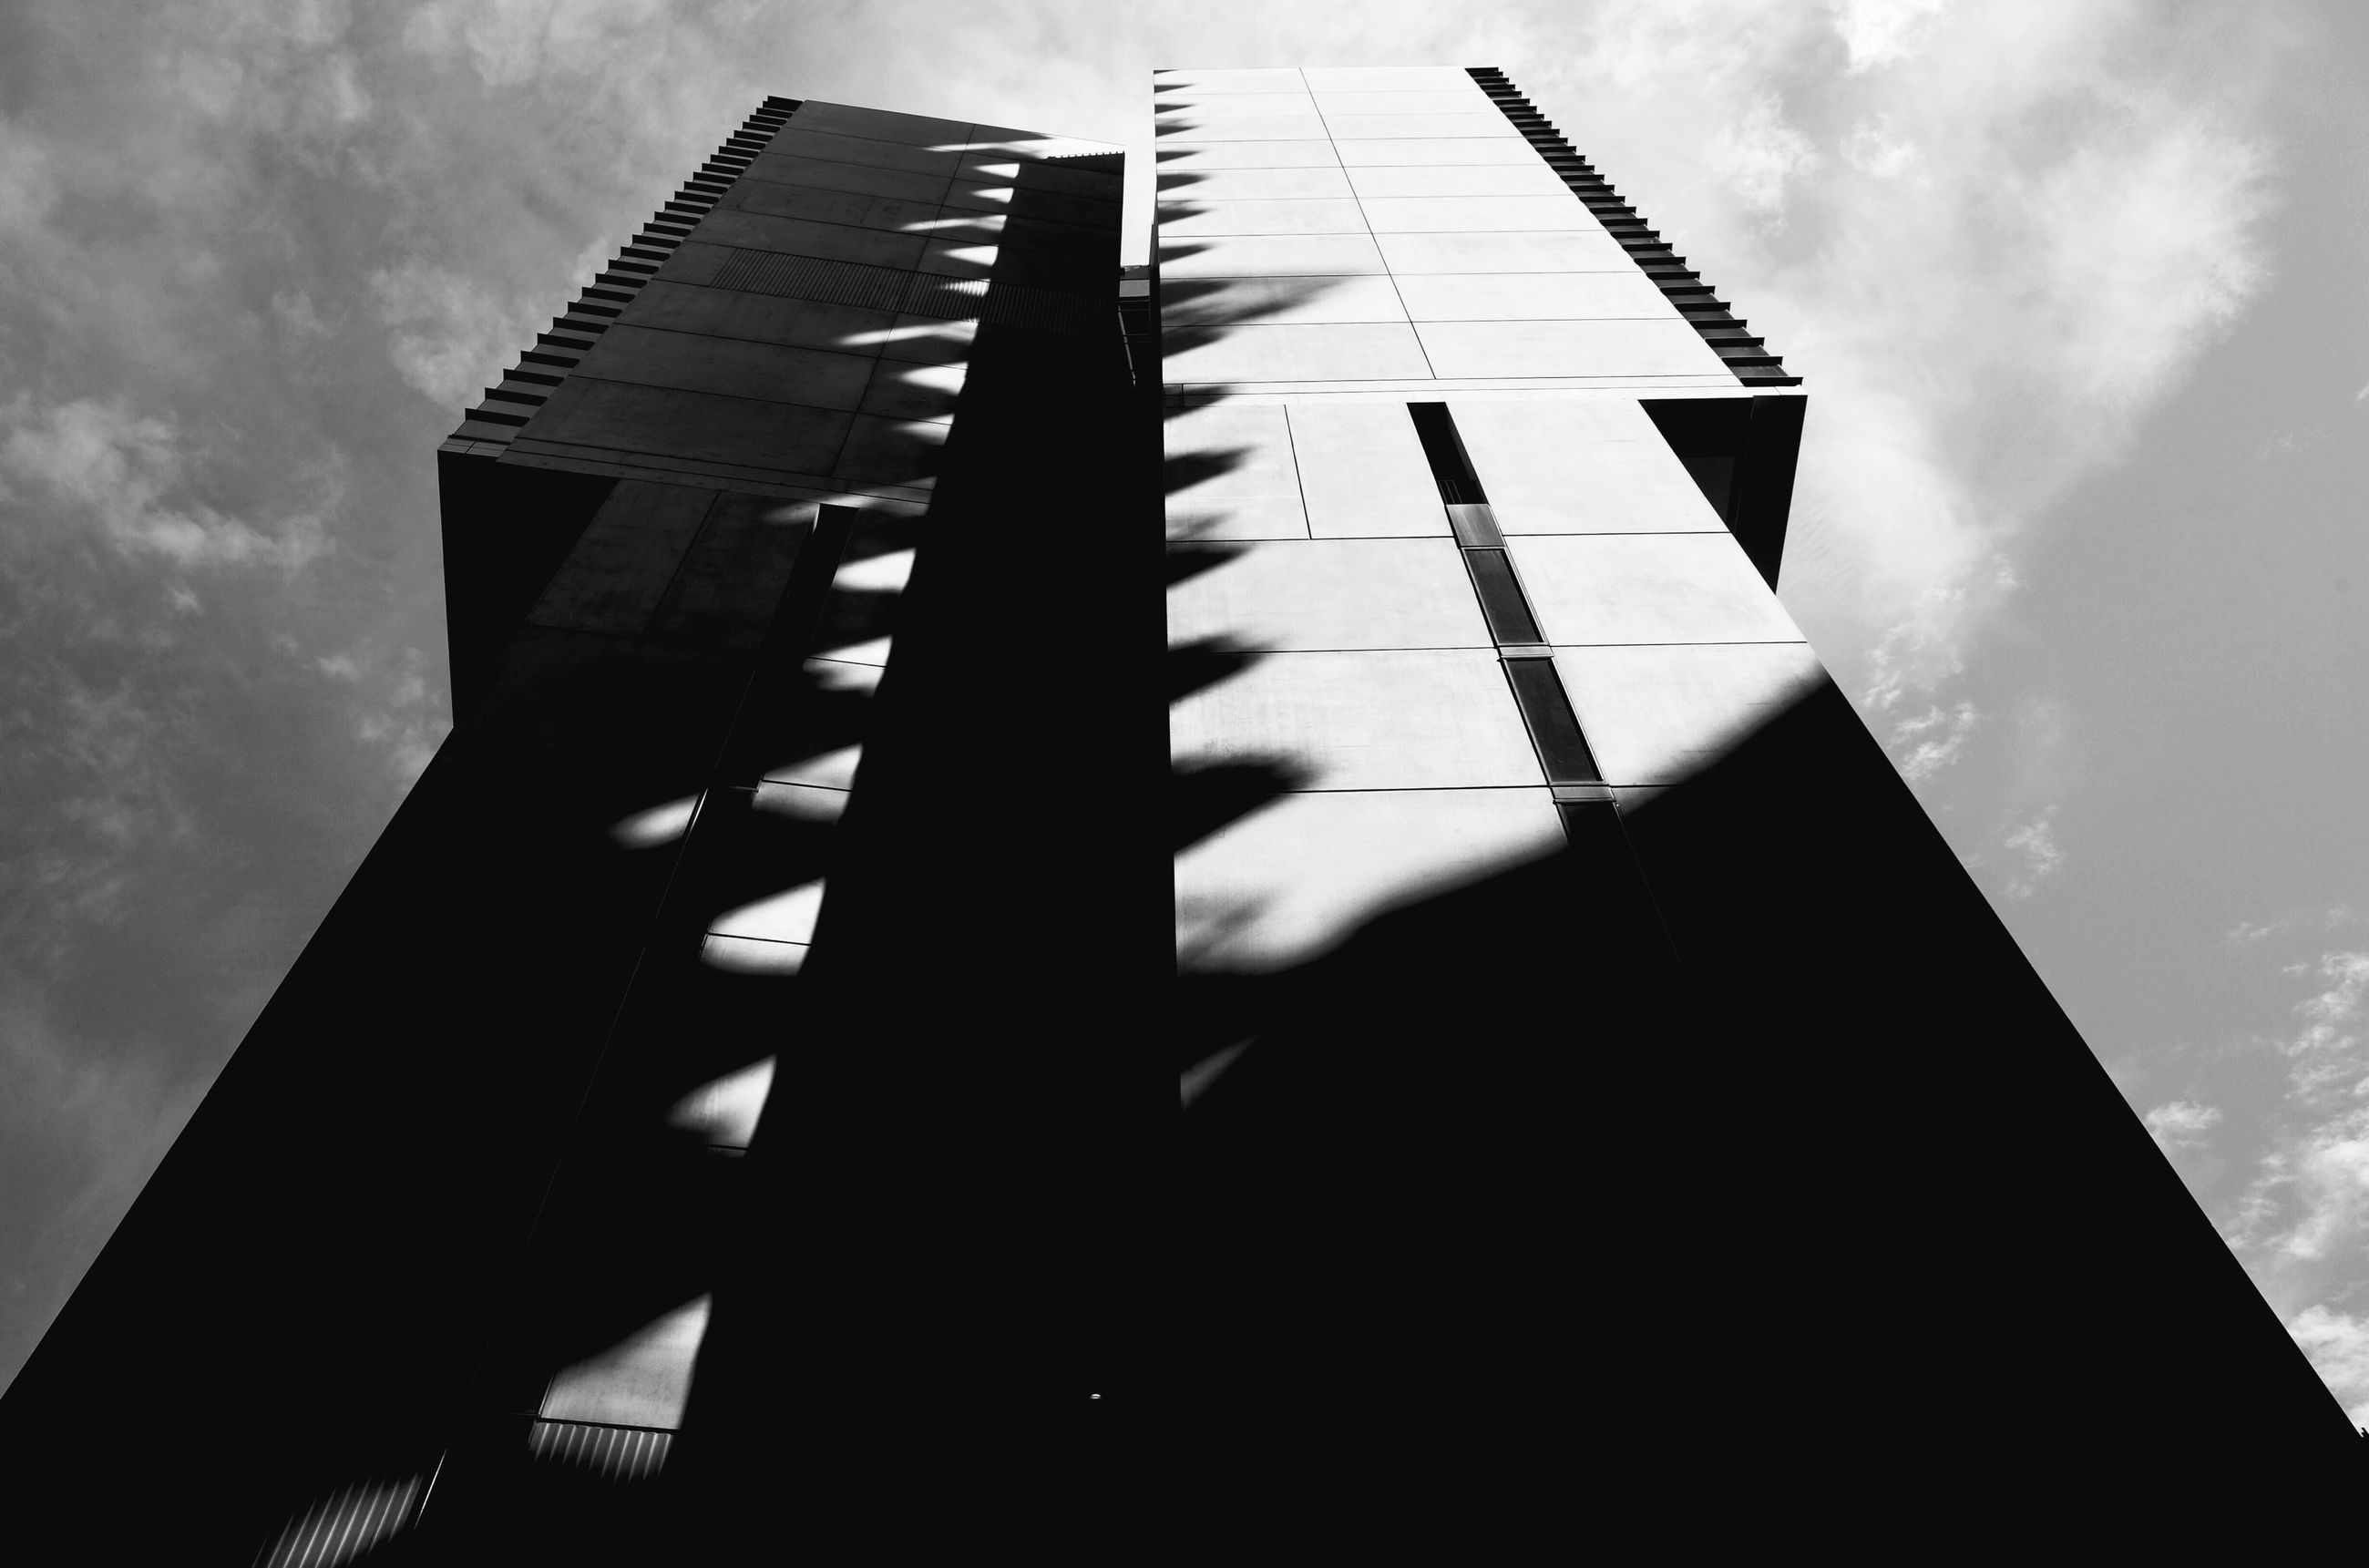 low angle view, architecture, built structure, building exterior, sky, tall - high, skyscraper, tower, tall, cloud - sky, city, modern, office building, no people, outdoors, day, cloud, building, silhouette, cloudy